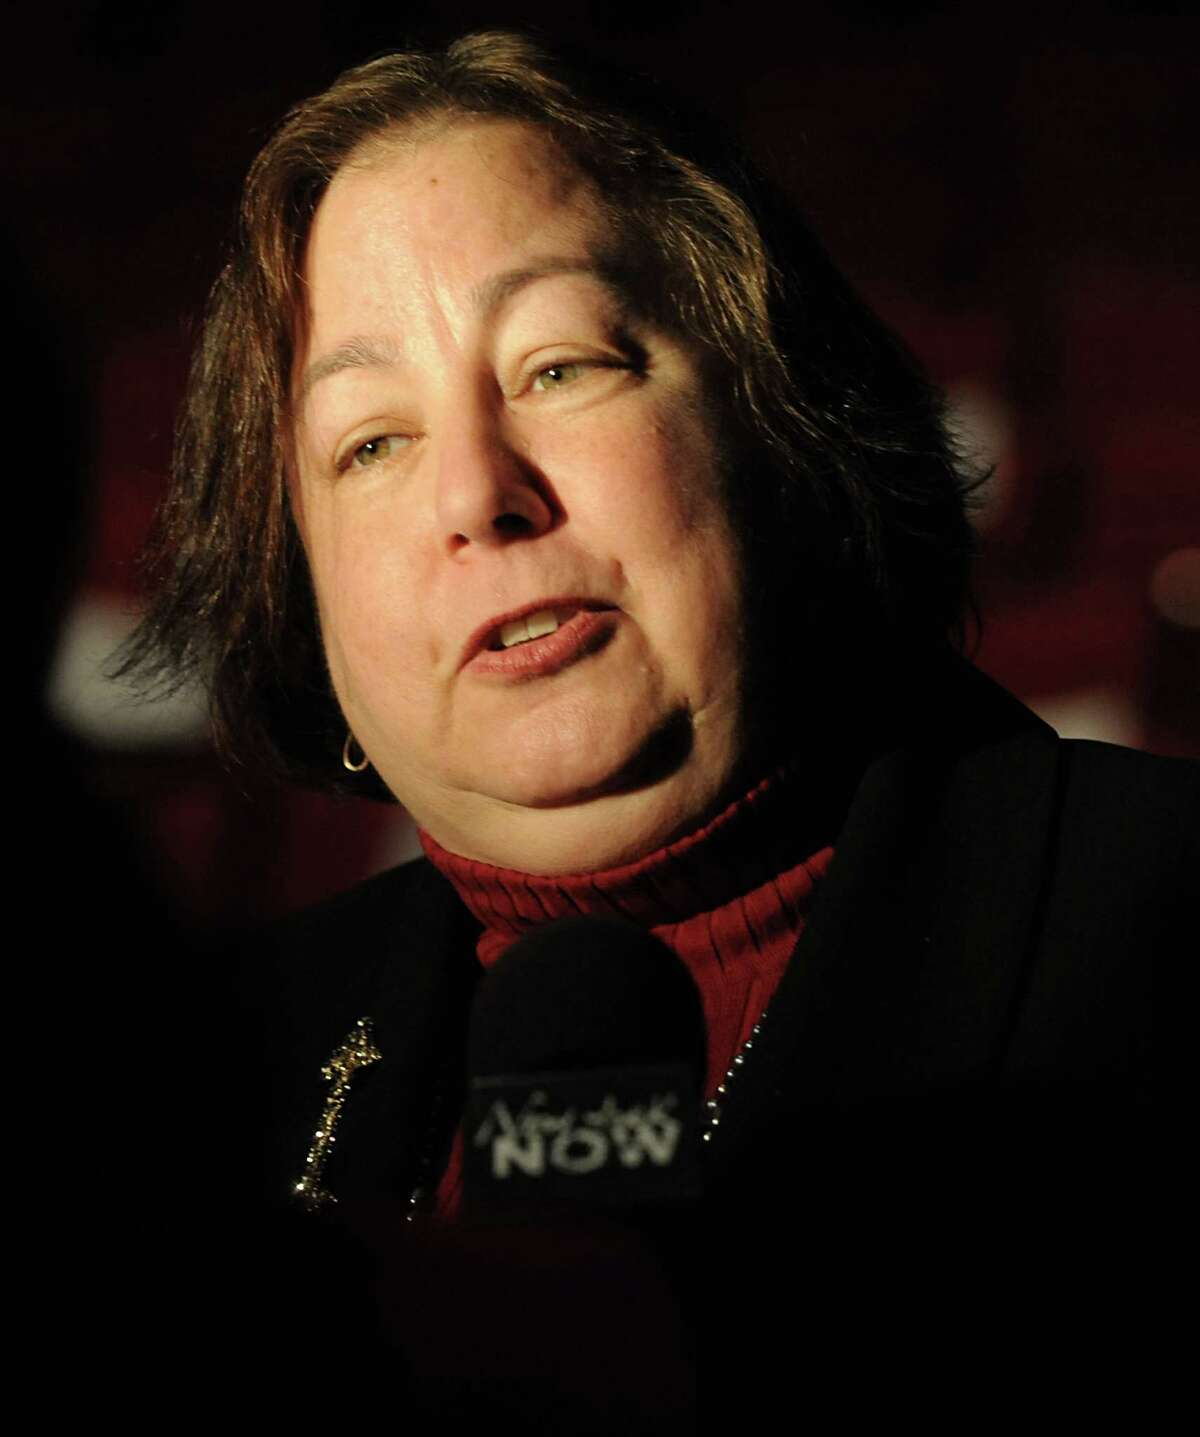 New York State Senator Liz Krueger talks to the press after Gov. Andrew Cuomo delivered his budget proposal for fiscal year 2013-14 in the Hart Theater in The Egg on Tuesday, Jan. 22, 2013, in Albany, N.Y. (Lori Van Buren / Times Union archive)